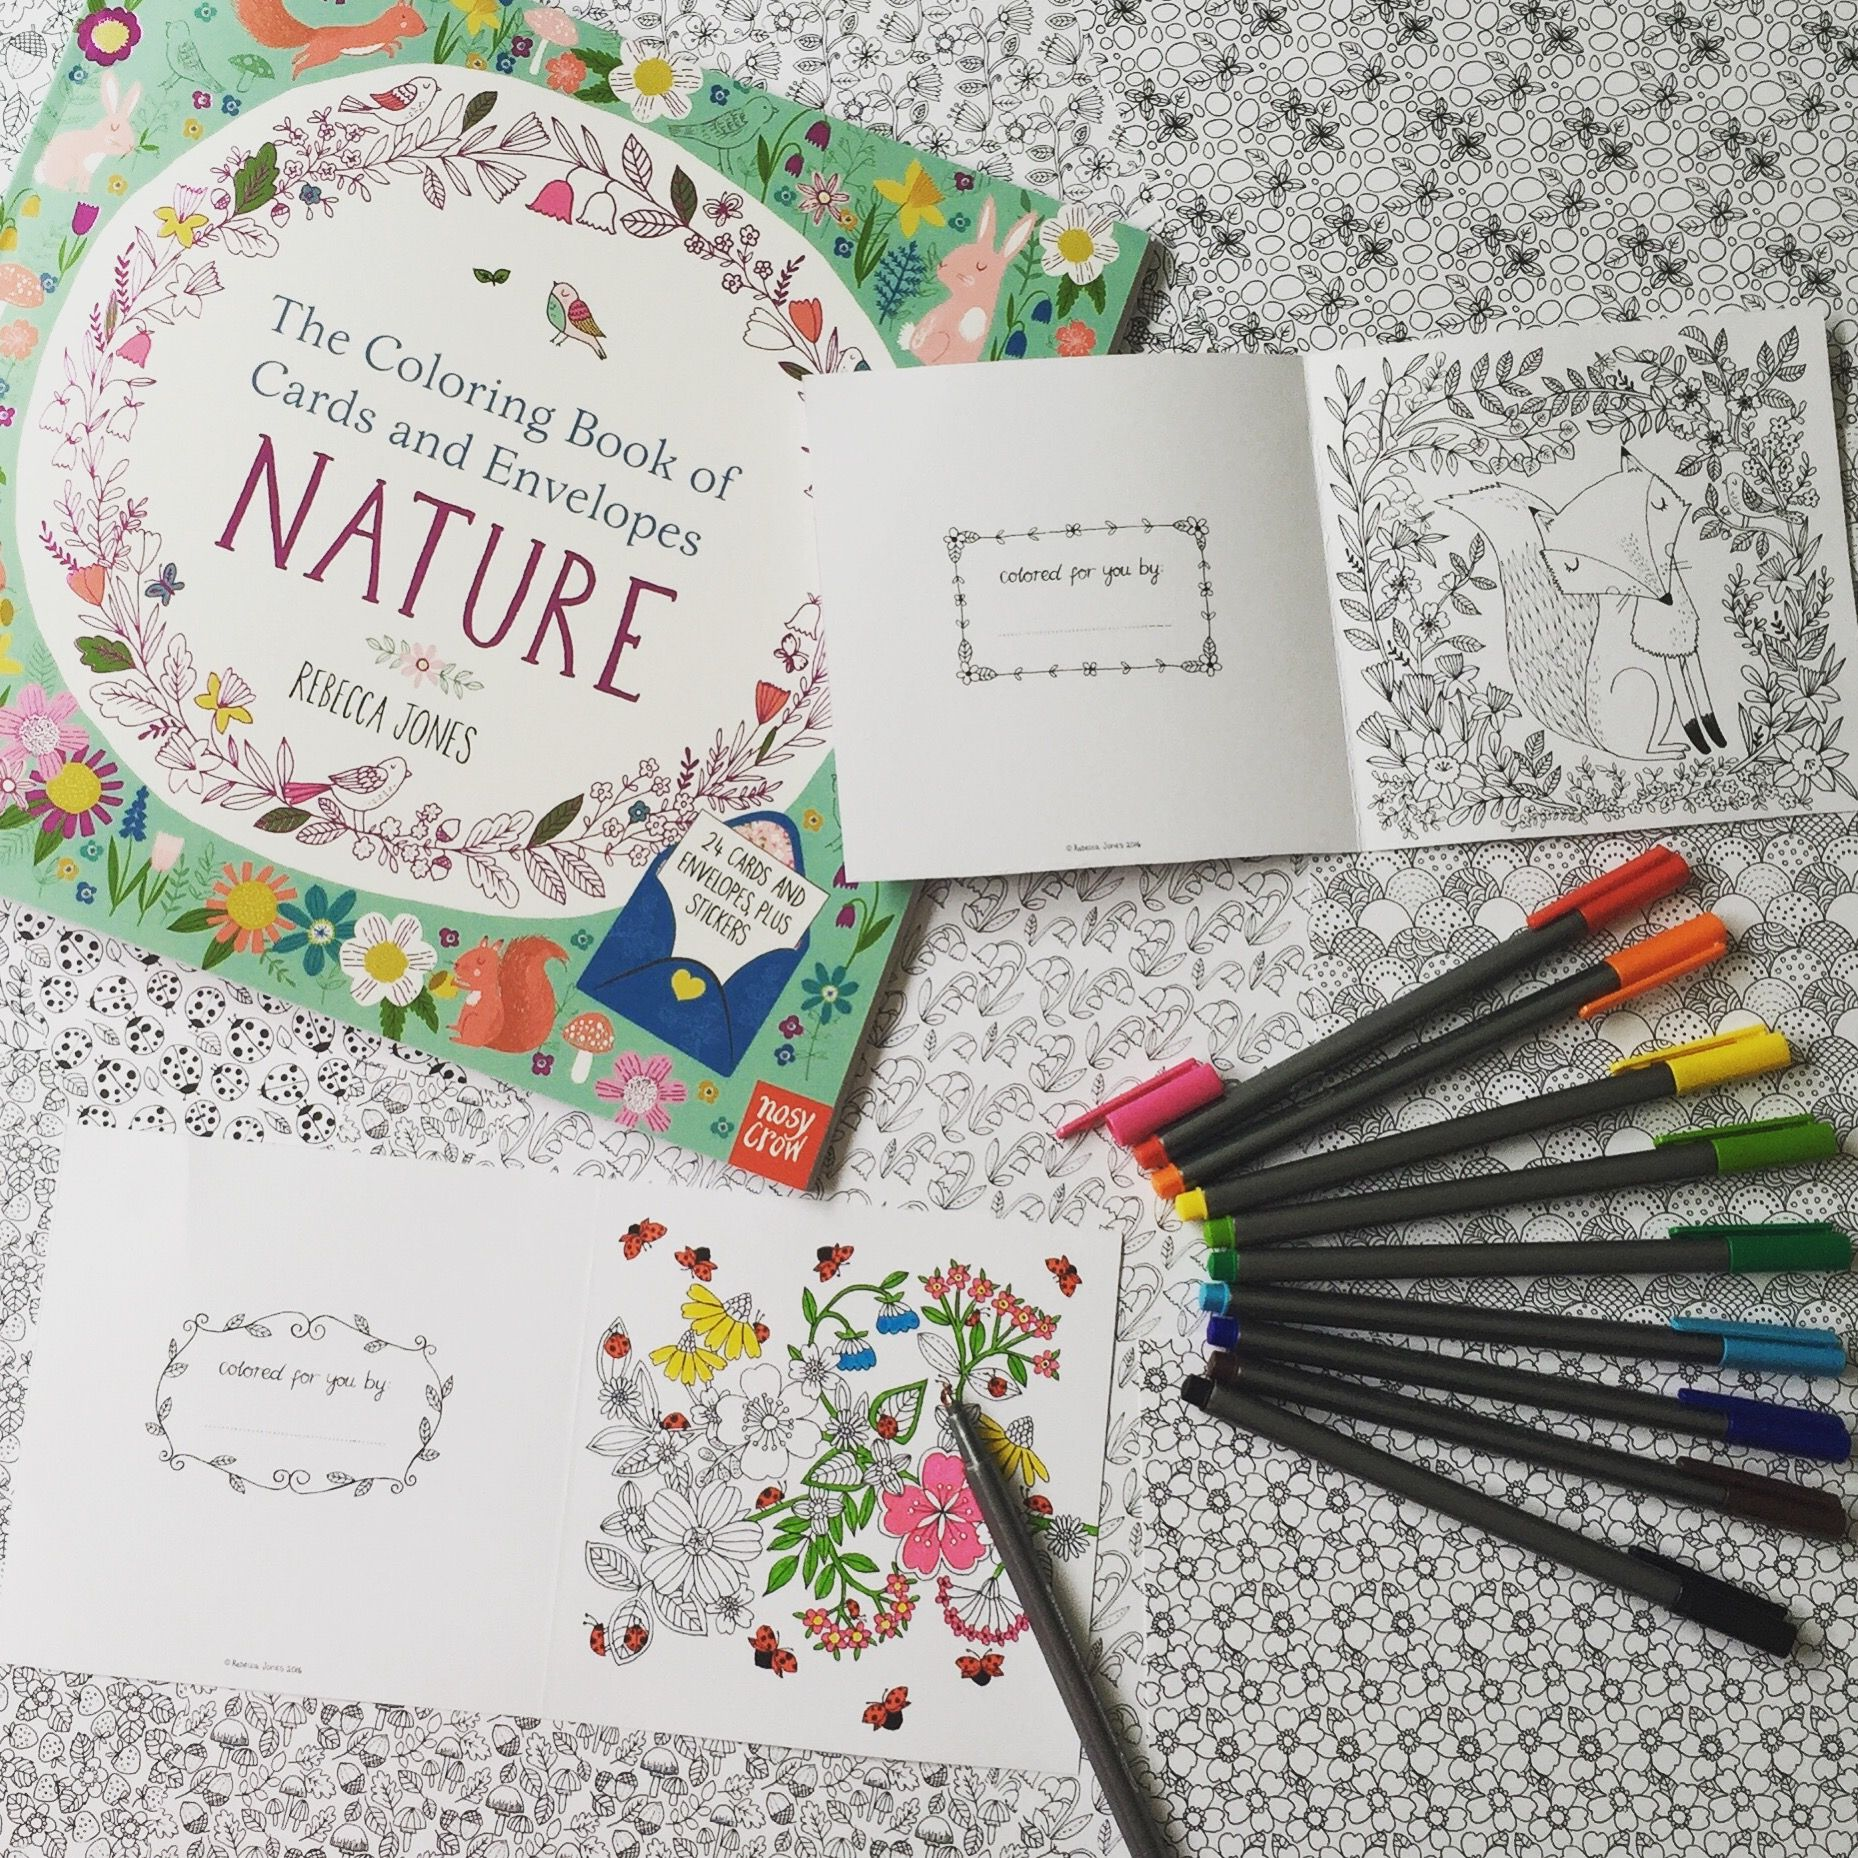 Get Creative And Add Some Color The Coloring Book Of Cards And Envelopes Nature Coloring Books Cards Envelopes Candlewicking